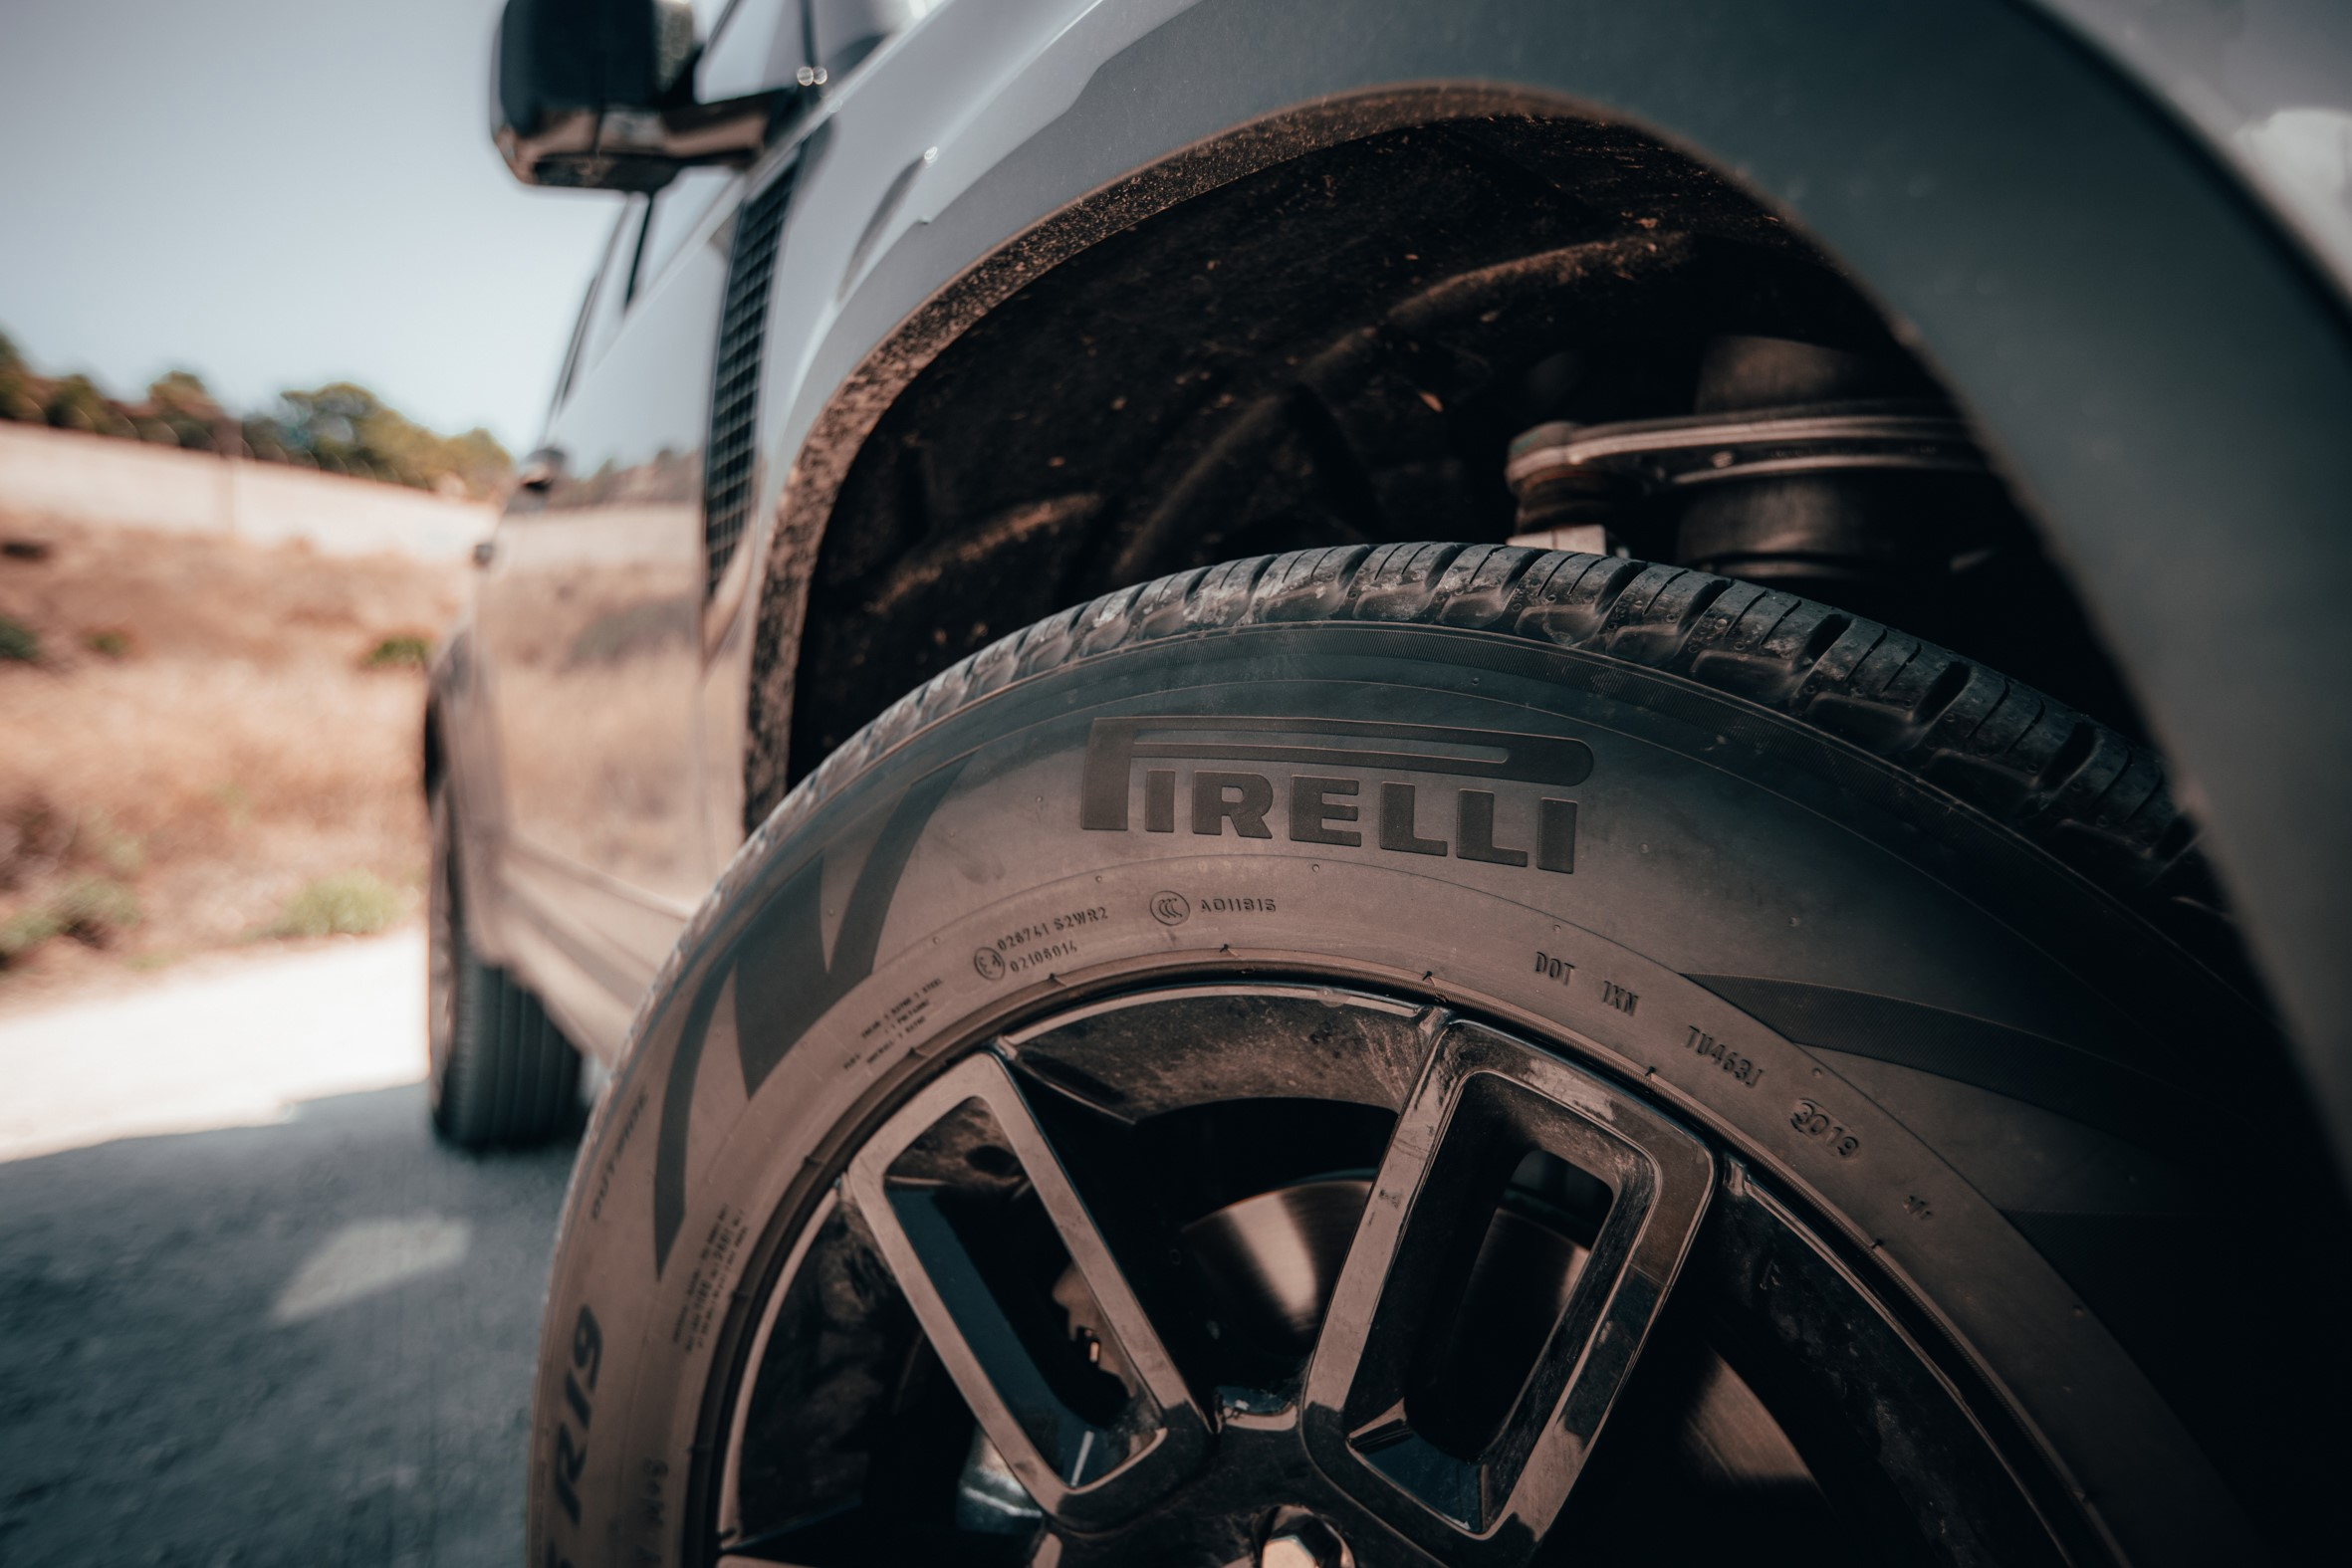 Low Emissions And Reduced Fuel Consumption With New Scorpion Zero All Season Tyre For The Latest Land Rover Defender